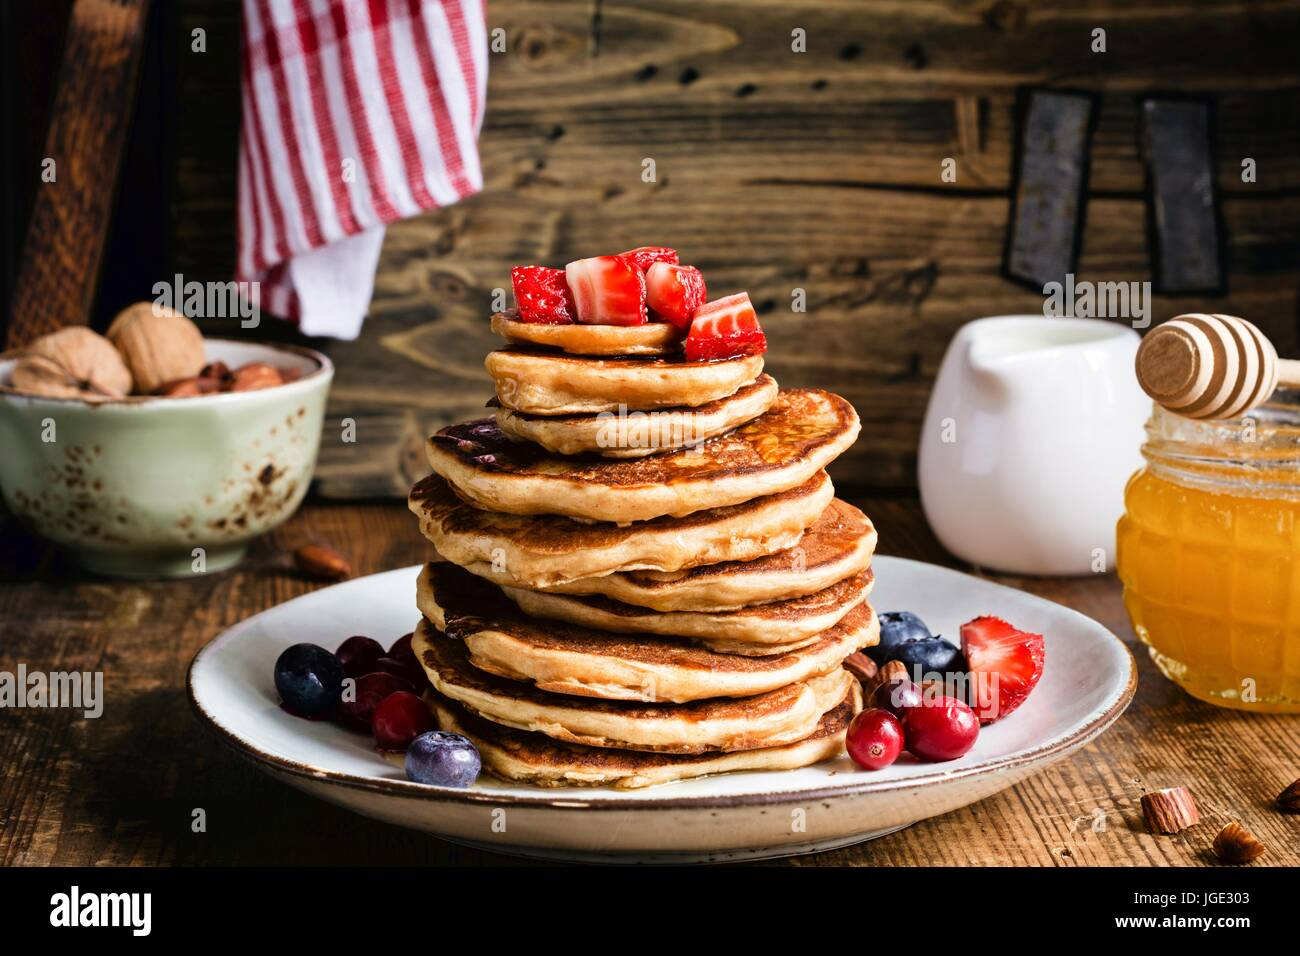 Whole meal pancakes with fresh berries and honey on wooden table. Closeup view. Rustic style stock food photo - Stock Image